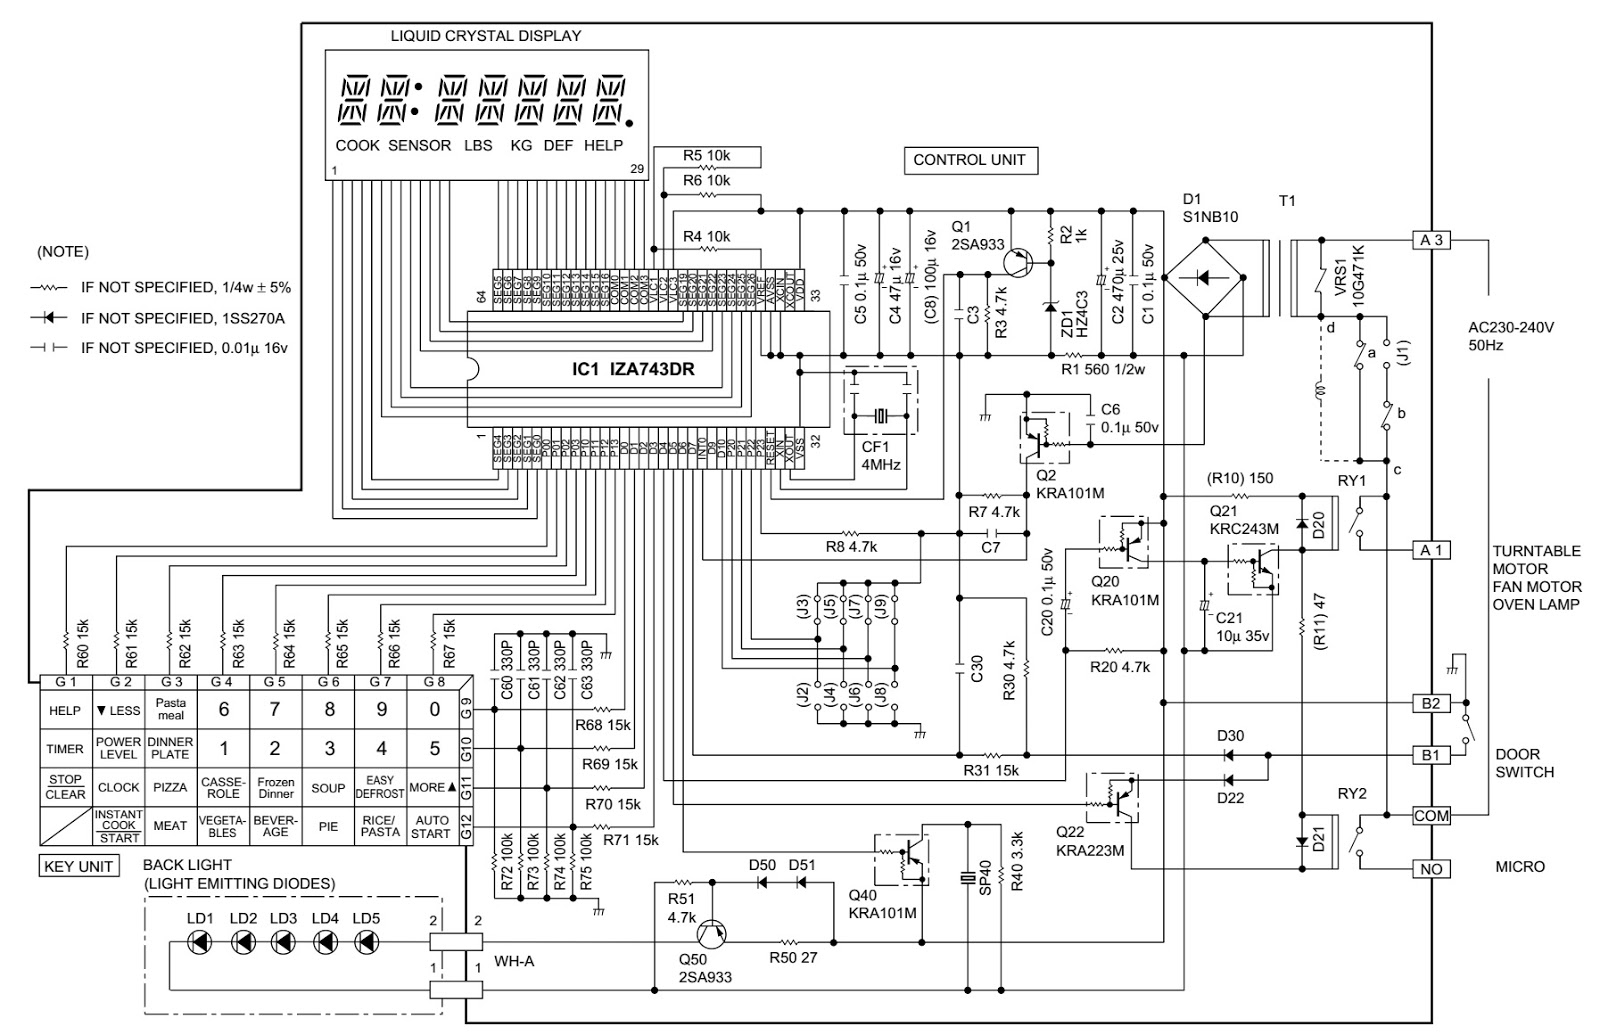 Sharp R 3C59 Microwave oven – circuit diagram